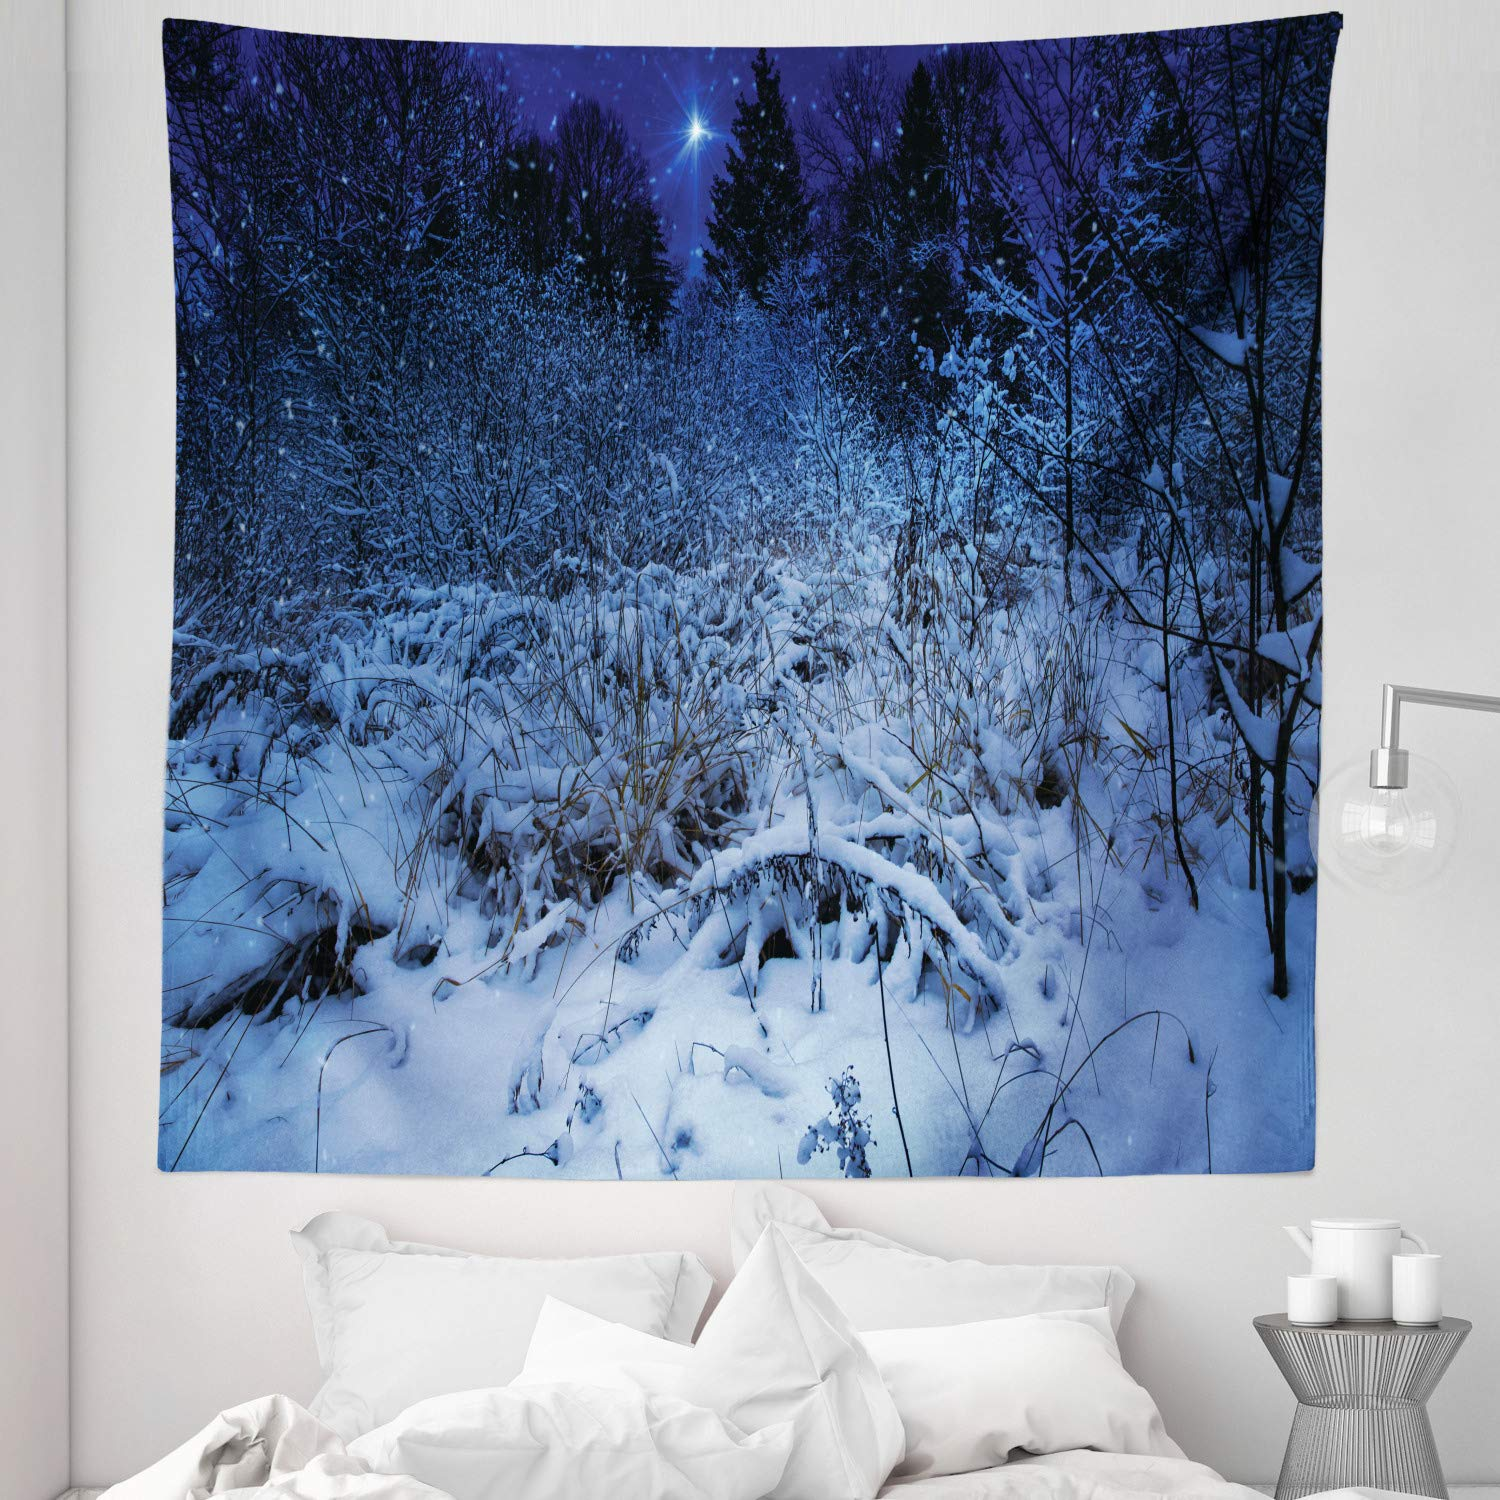 """Lunarable Christmas Tapestry Queen Size, Snowy Forest at Night with Xmas Star Holiday Blizzard Winter Sky Universe, Wall Hanging Bedspread Bed Cover Wall Decor, 88"""" X 88"""", Navy Blue"""